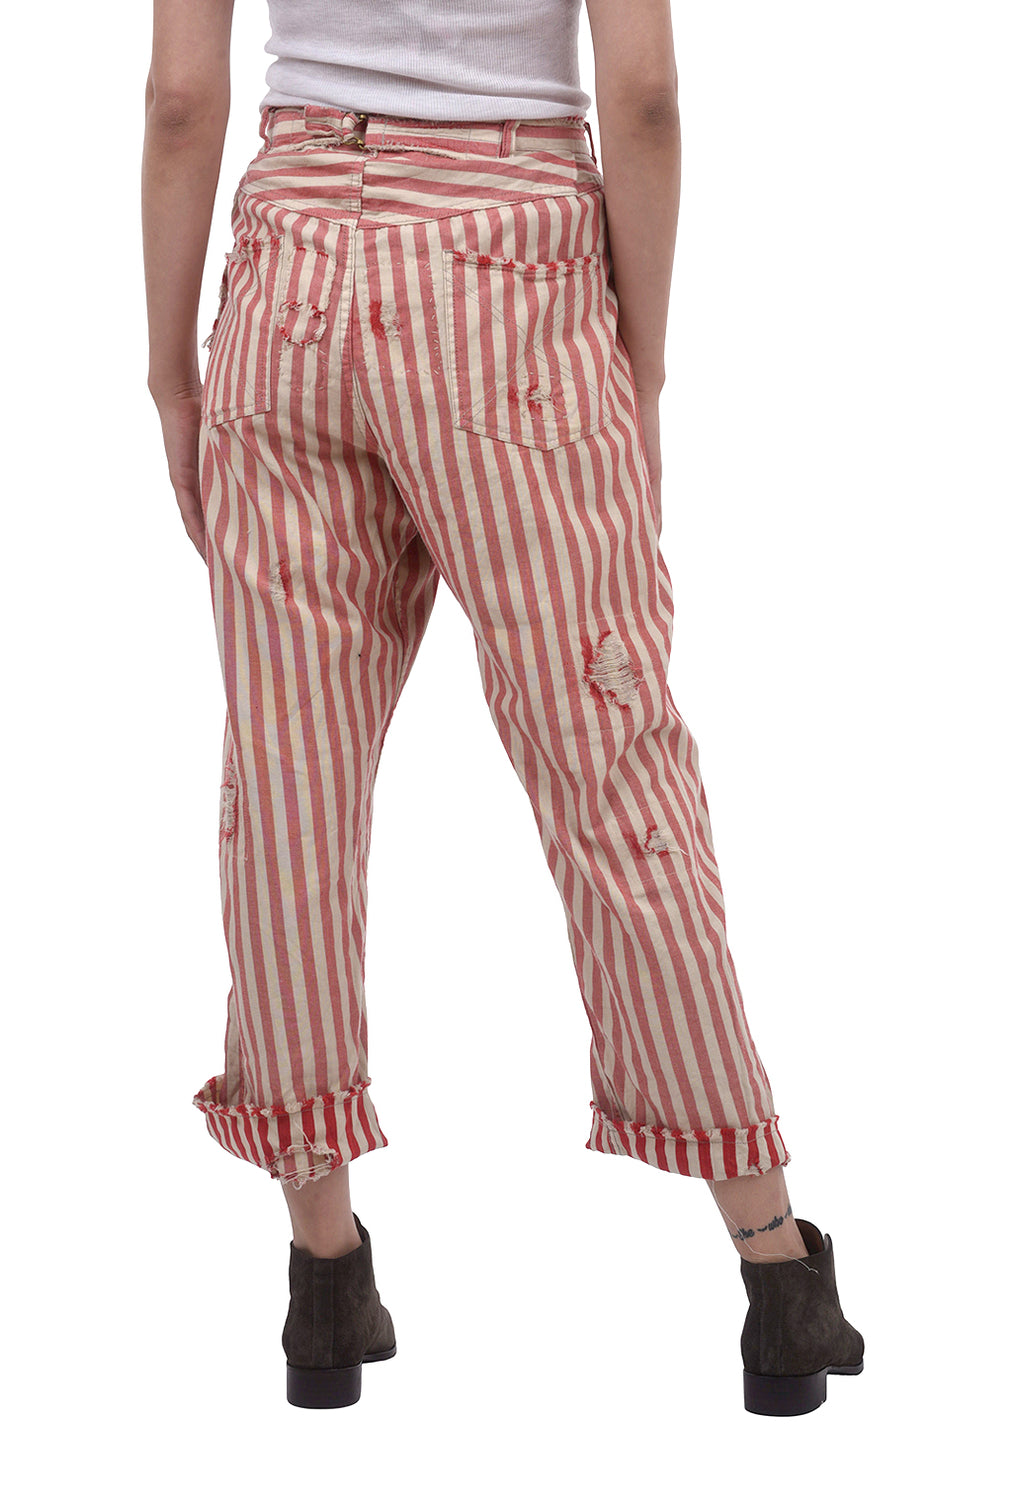 Magnolia Pearl Cotton Denim Miner Pants, Big Top Red One Size Red